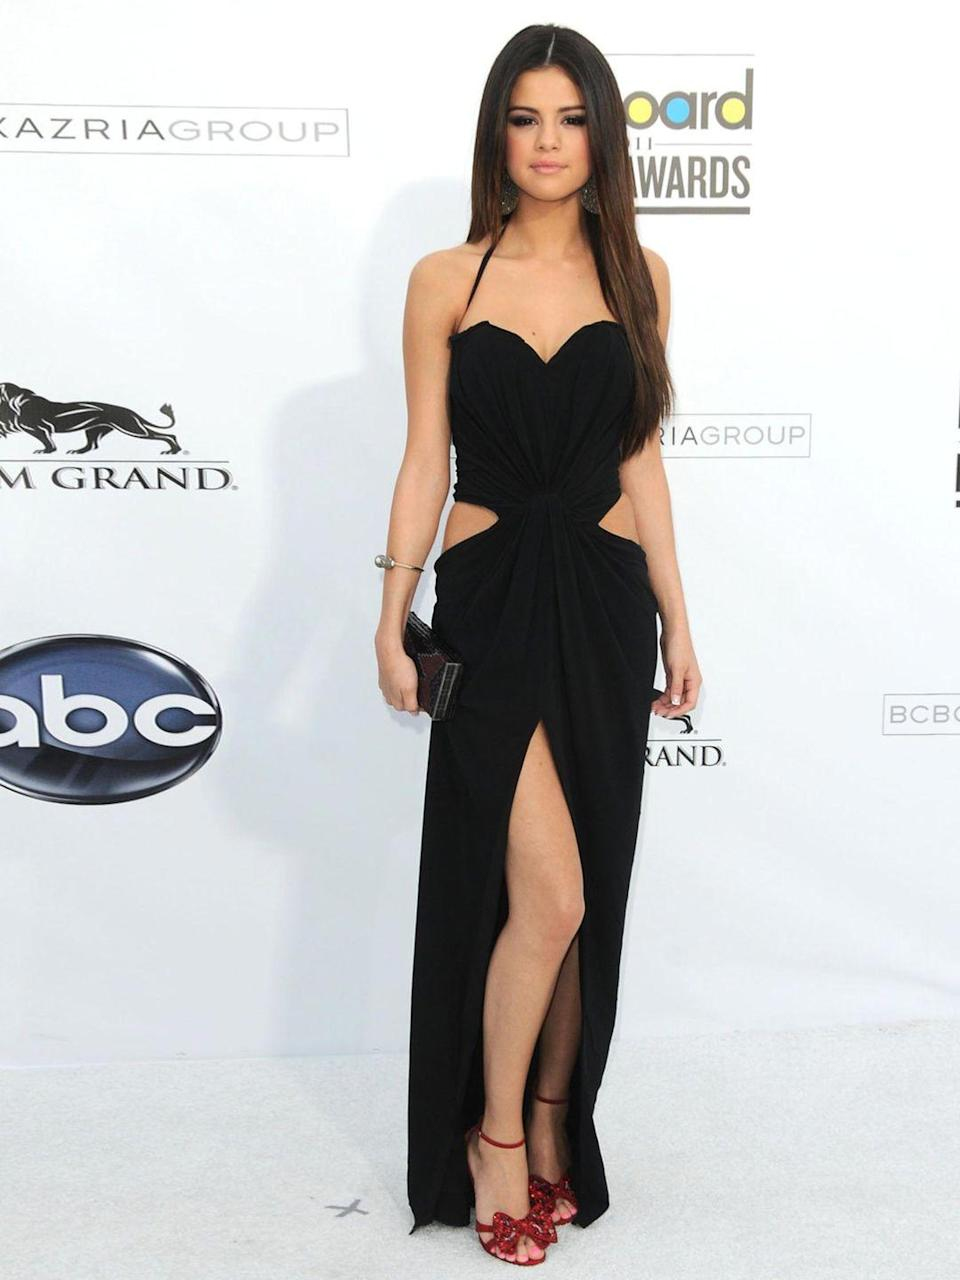 <p>Selena Gomez is at the Billboard Music Awards wearing a black Dolce & Gabbana cut out dress, May 2011.</p>